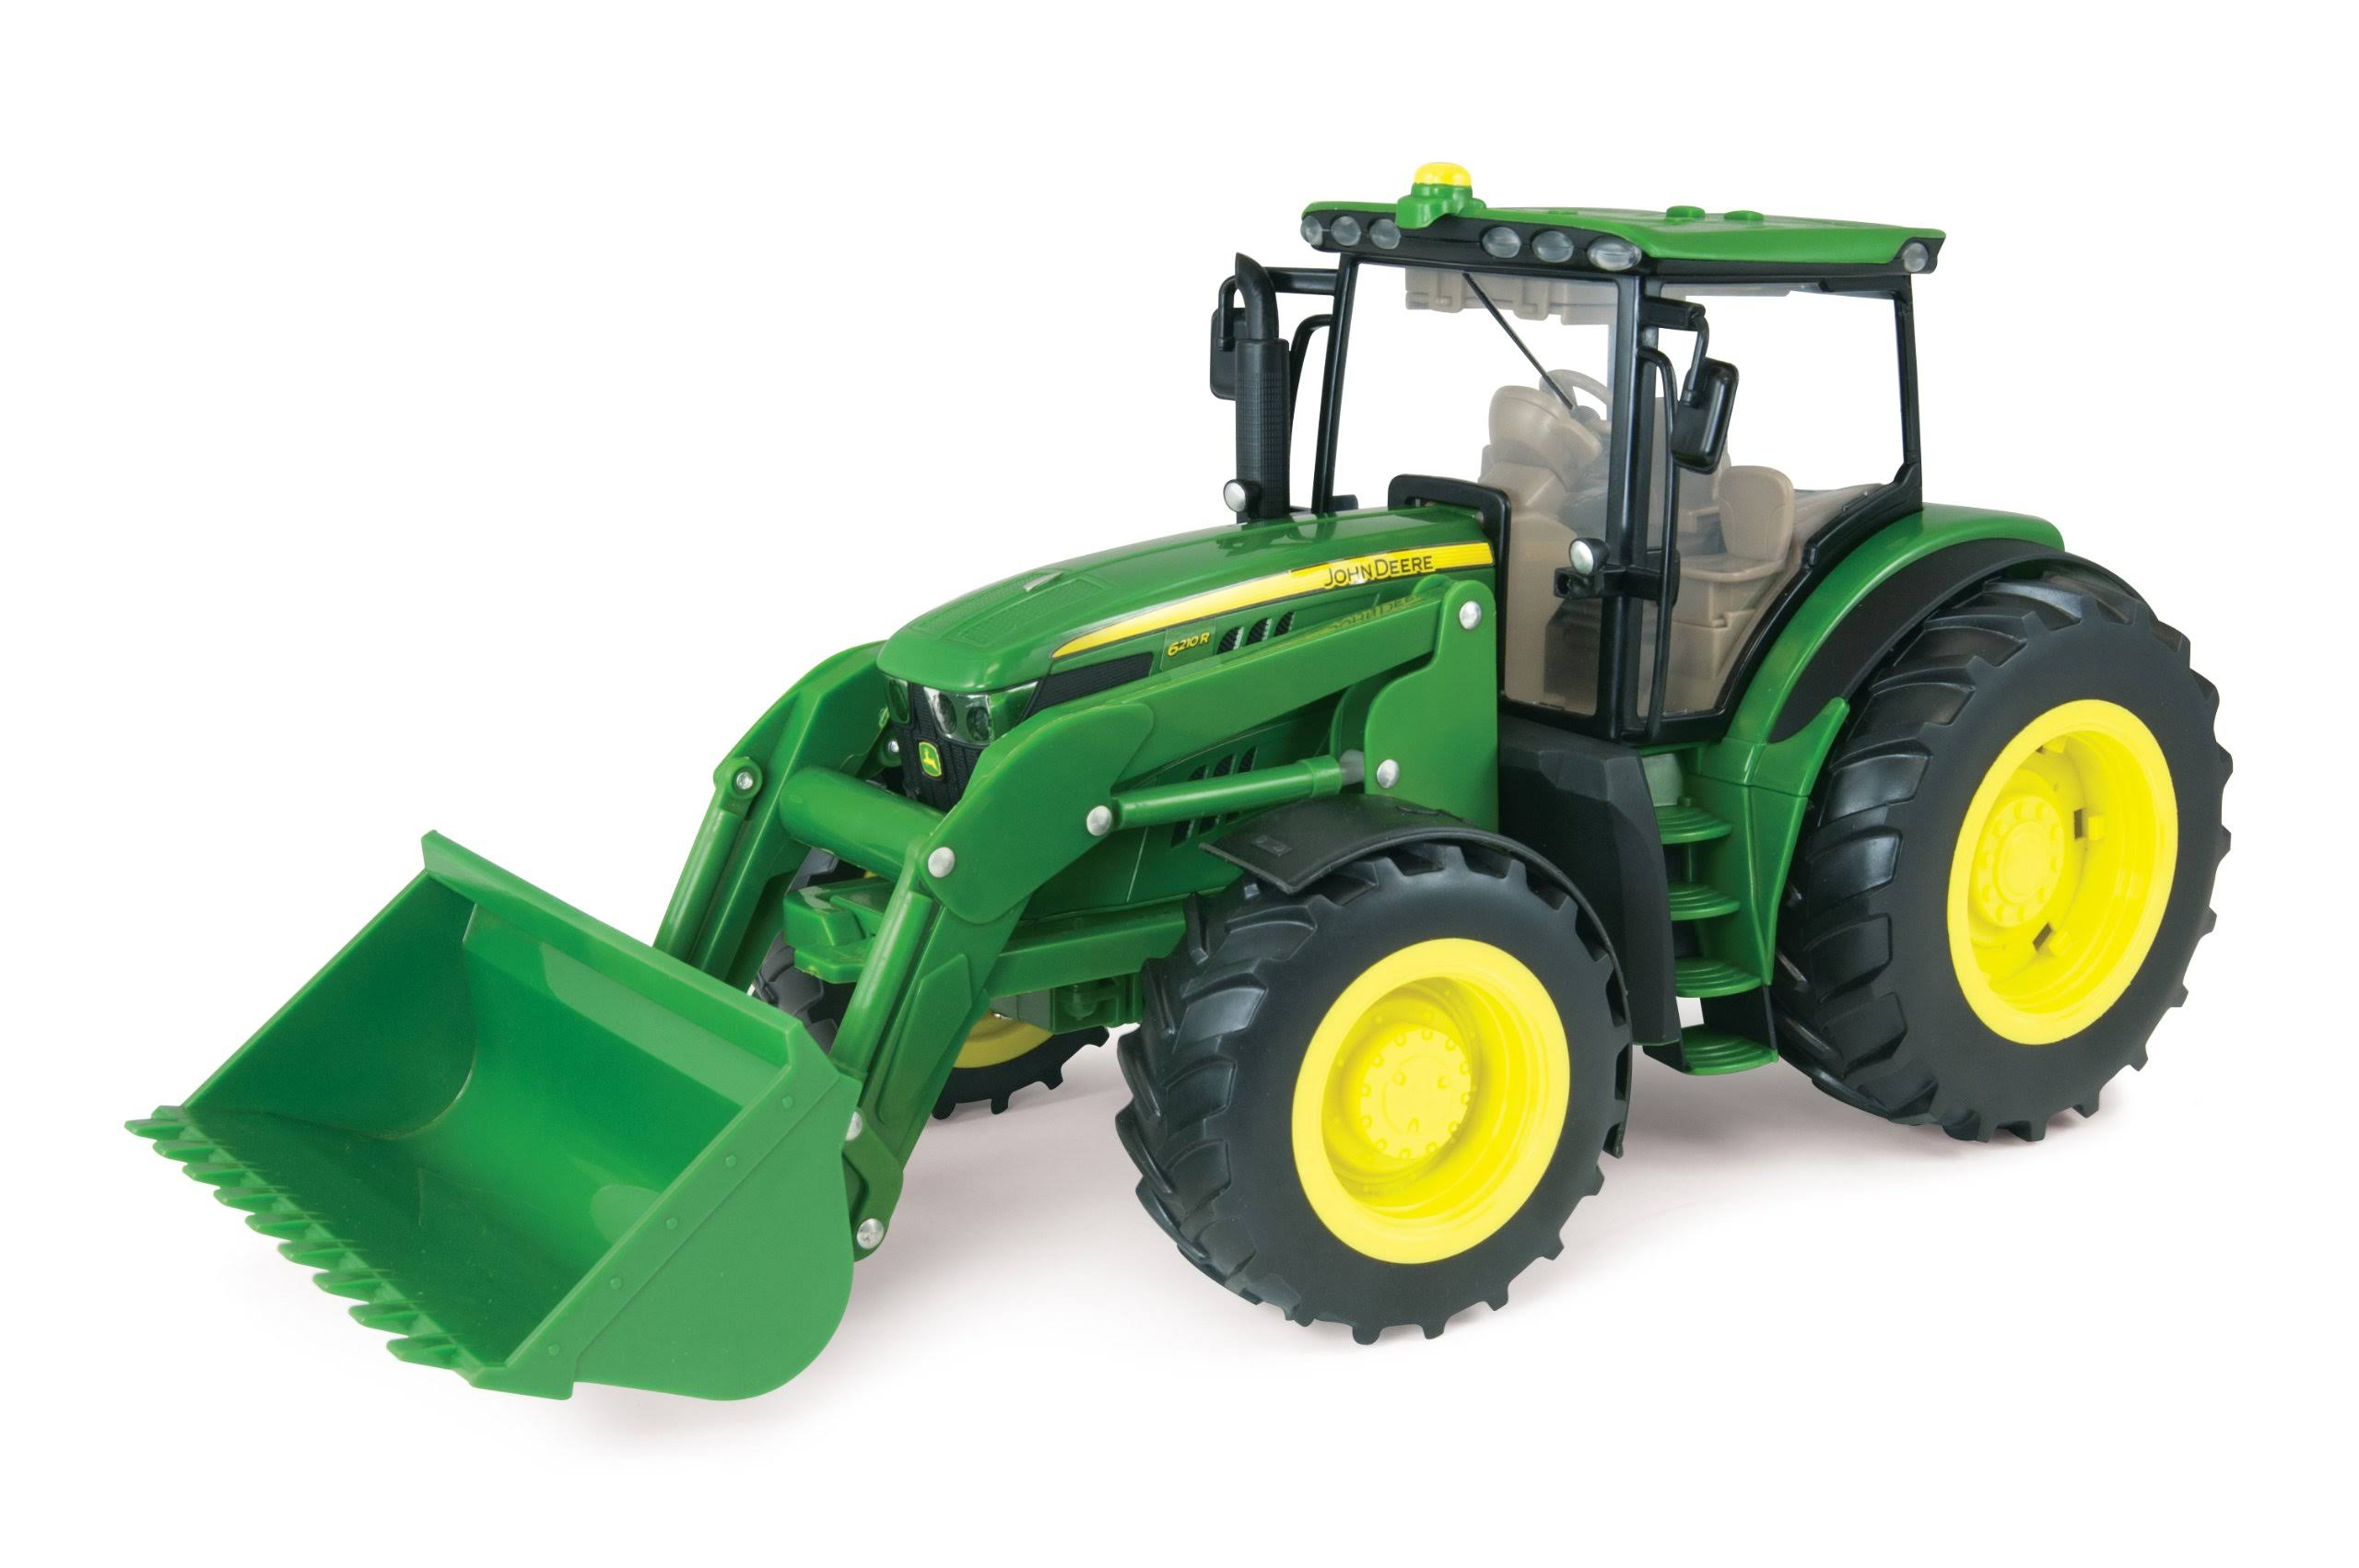 John Deere Tractor with Loader Vehicle Toy - 1:16 Scale